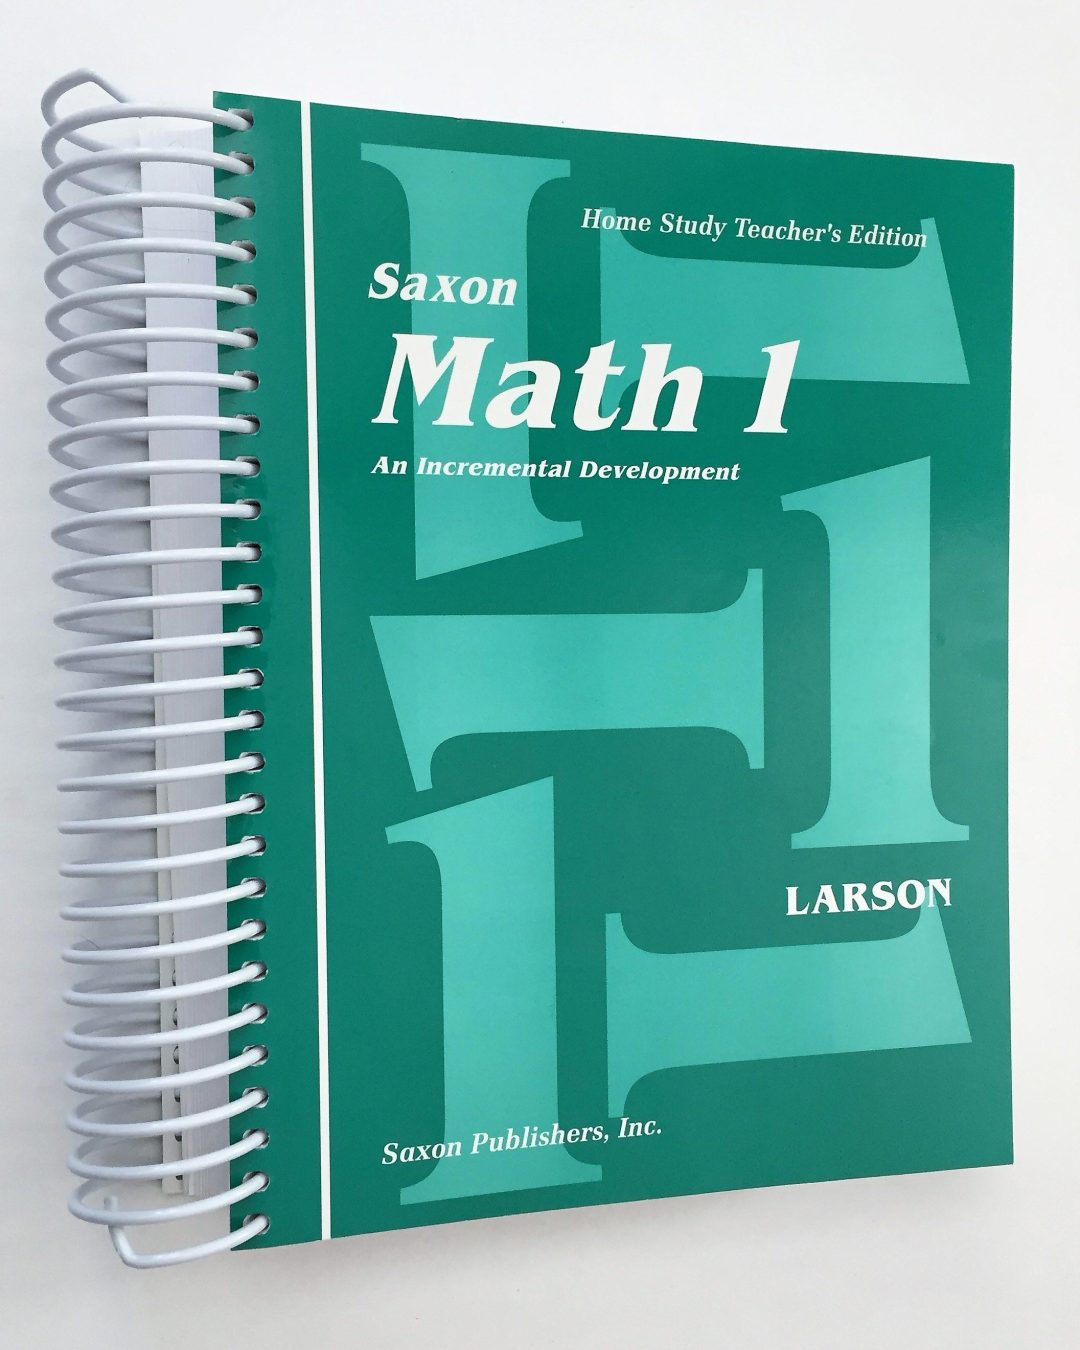 REVIEW: Saxon Math Grade 1 Curriculum - Check out this detailed review to see if it's the right fit for your child & teaching style!